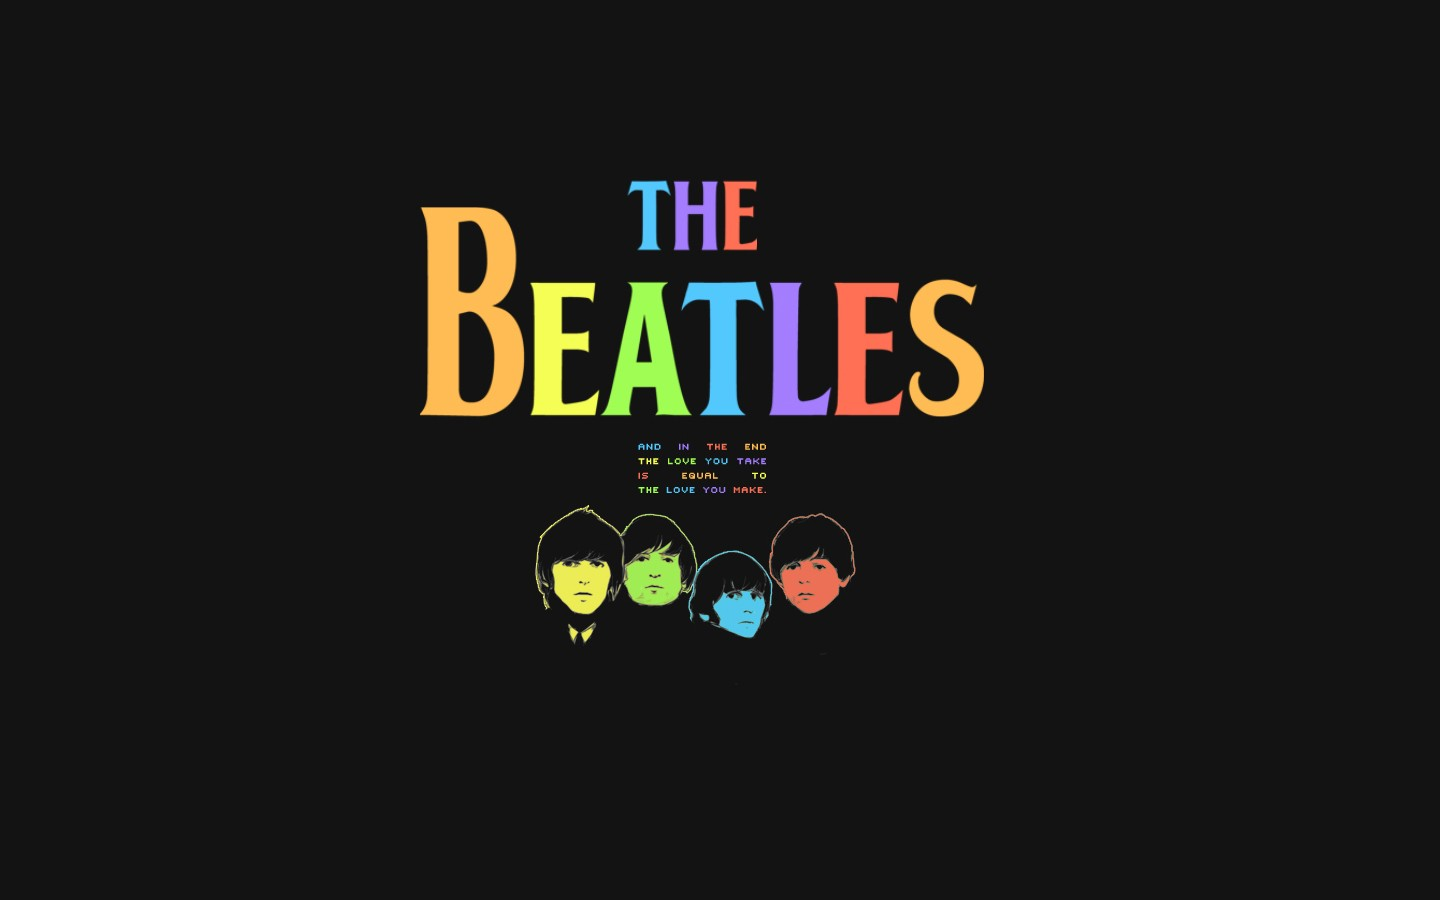 Image Colorful Beatles Wallpapers And Stock Photos